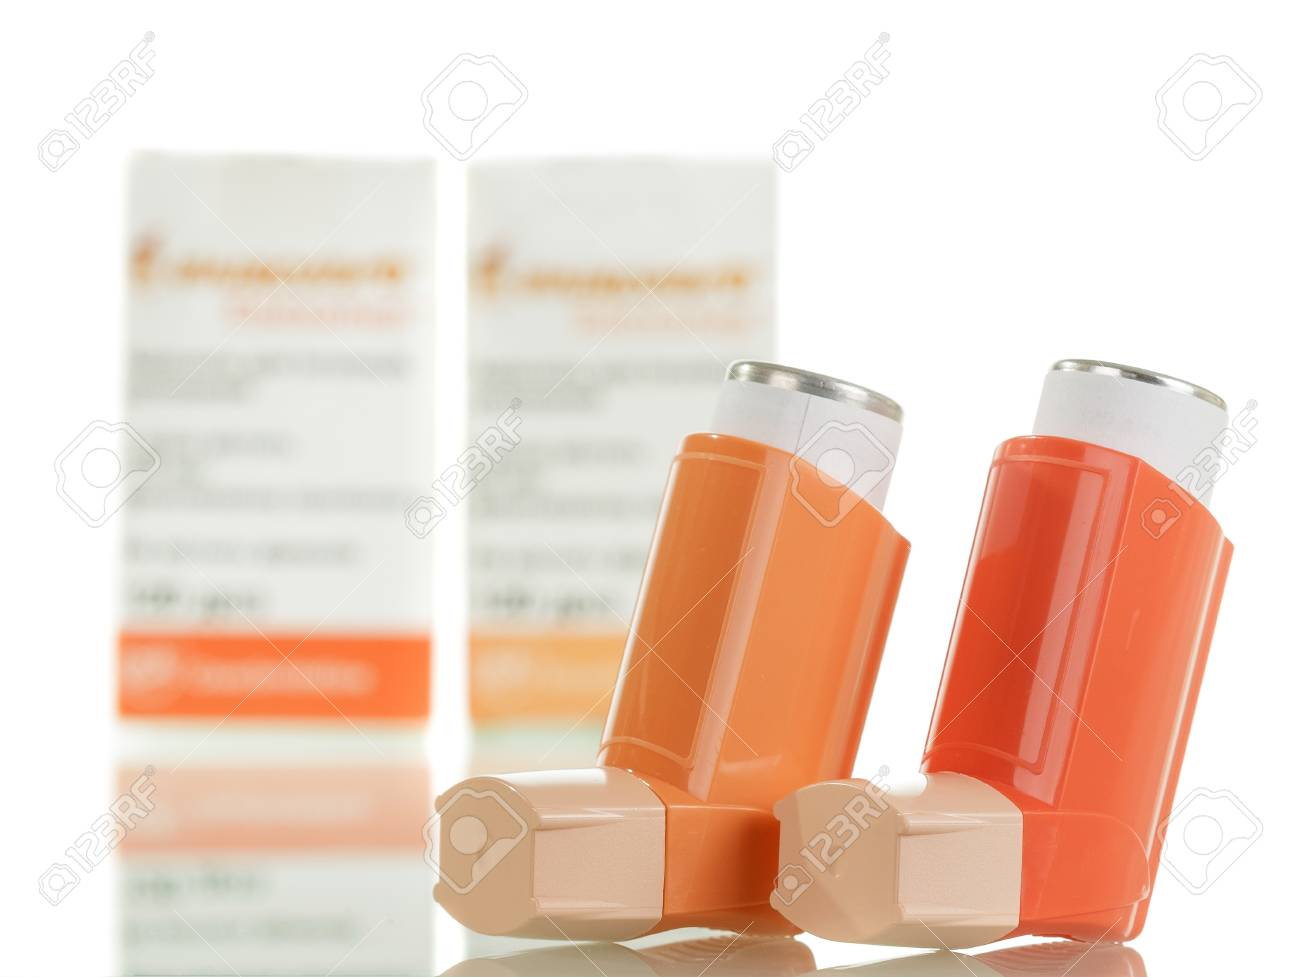 Two of the asthma inhaler and packaging of medicines isolated on white background. - 88002224